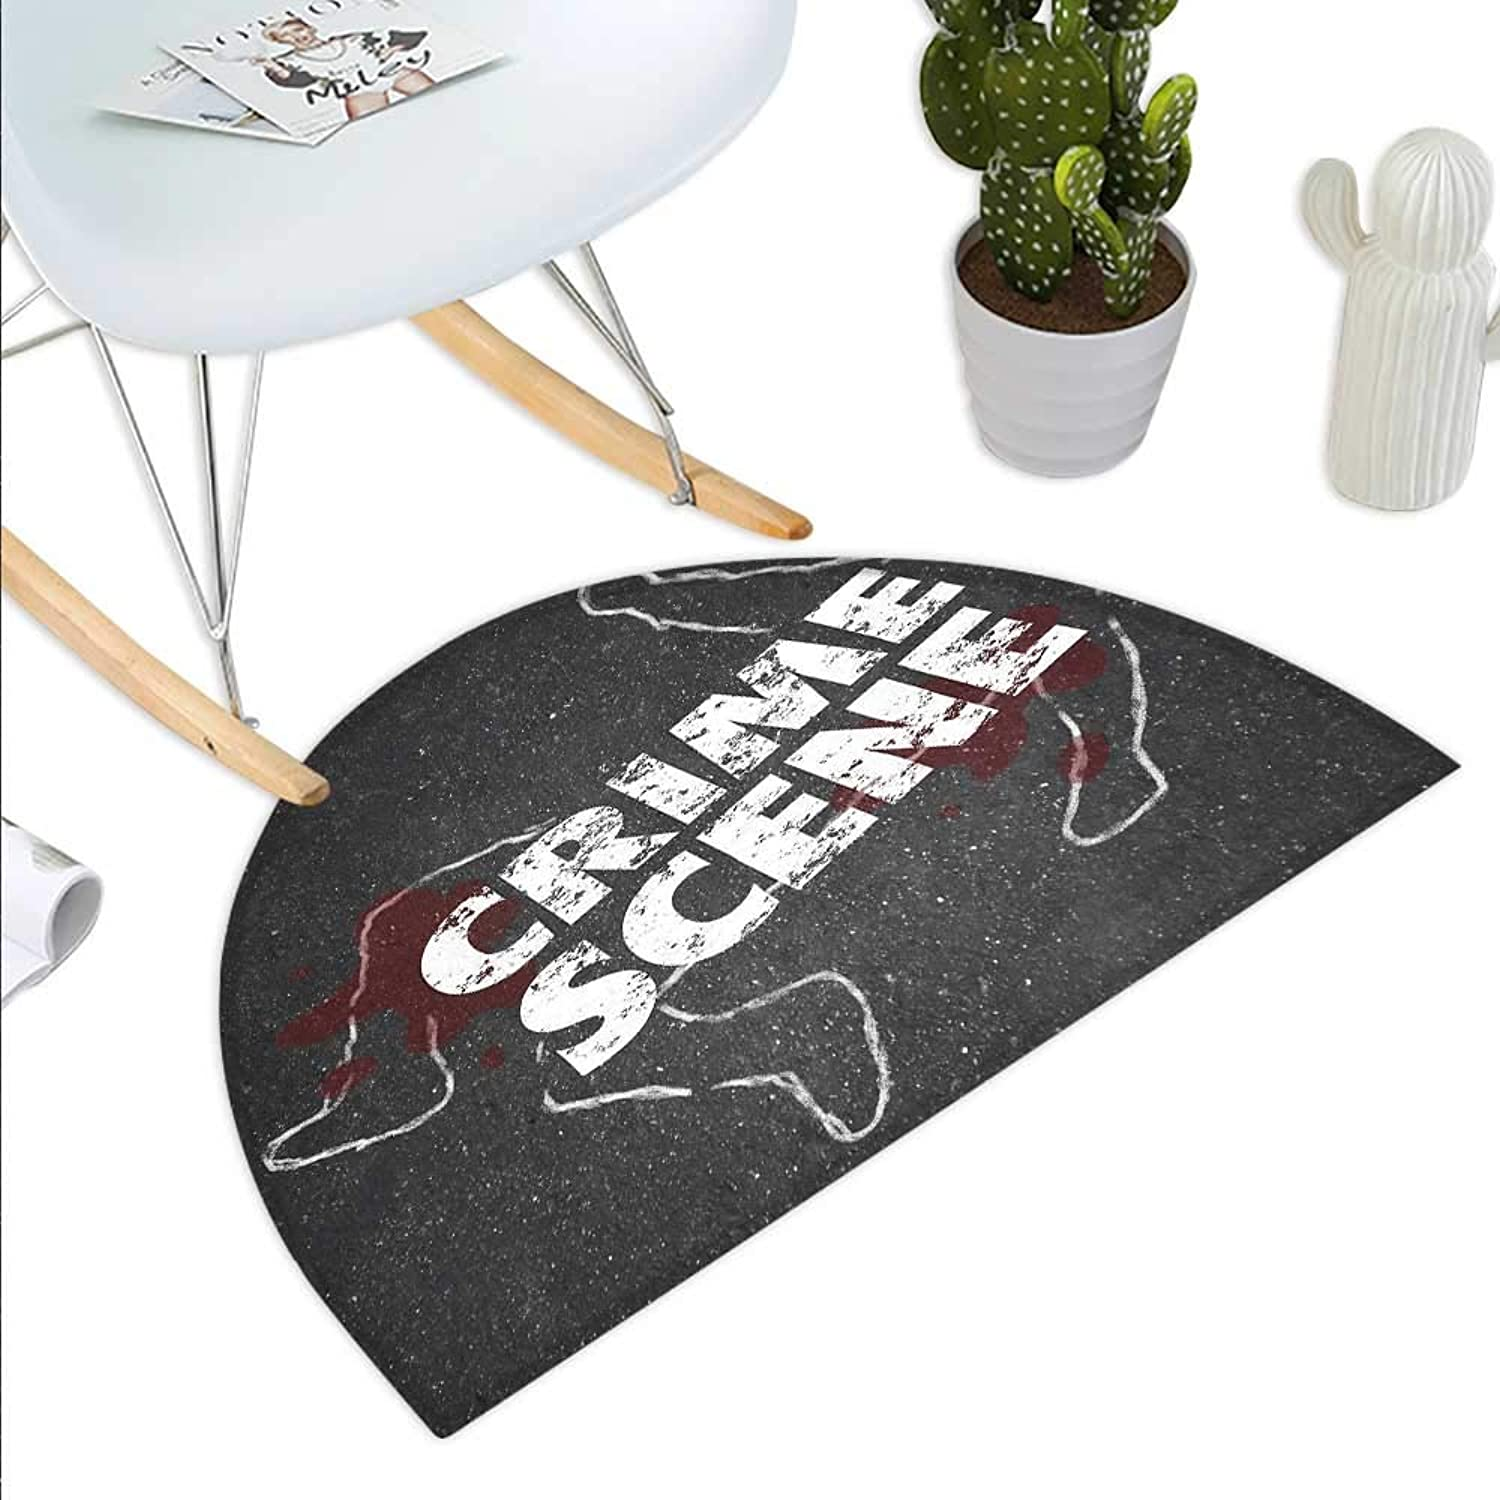 Murder Scene Semicircle Doormat Crime Scene Words on Outline of Victim Homicide Bloody Killing Halfmoon doormats H 43.3  xD 64.9  Charcoal Grey Maroon White